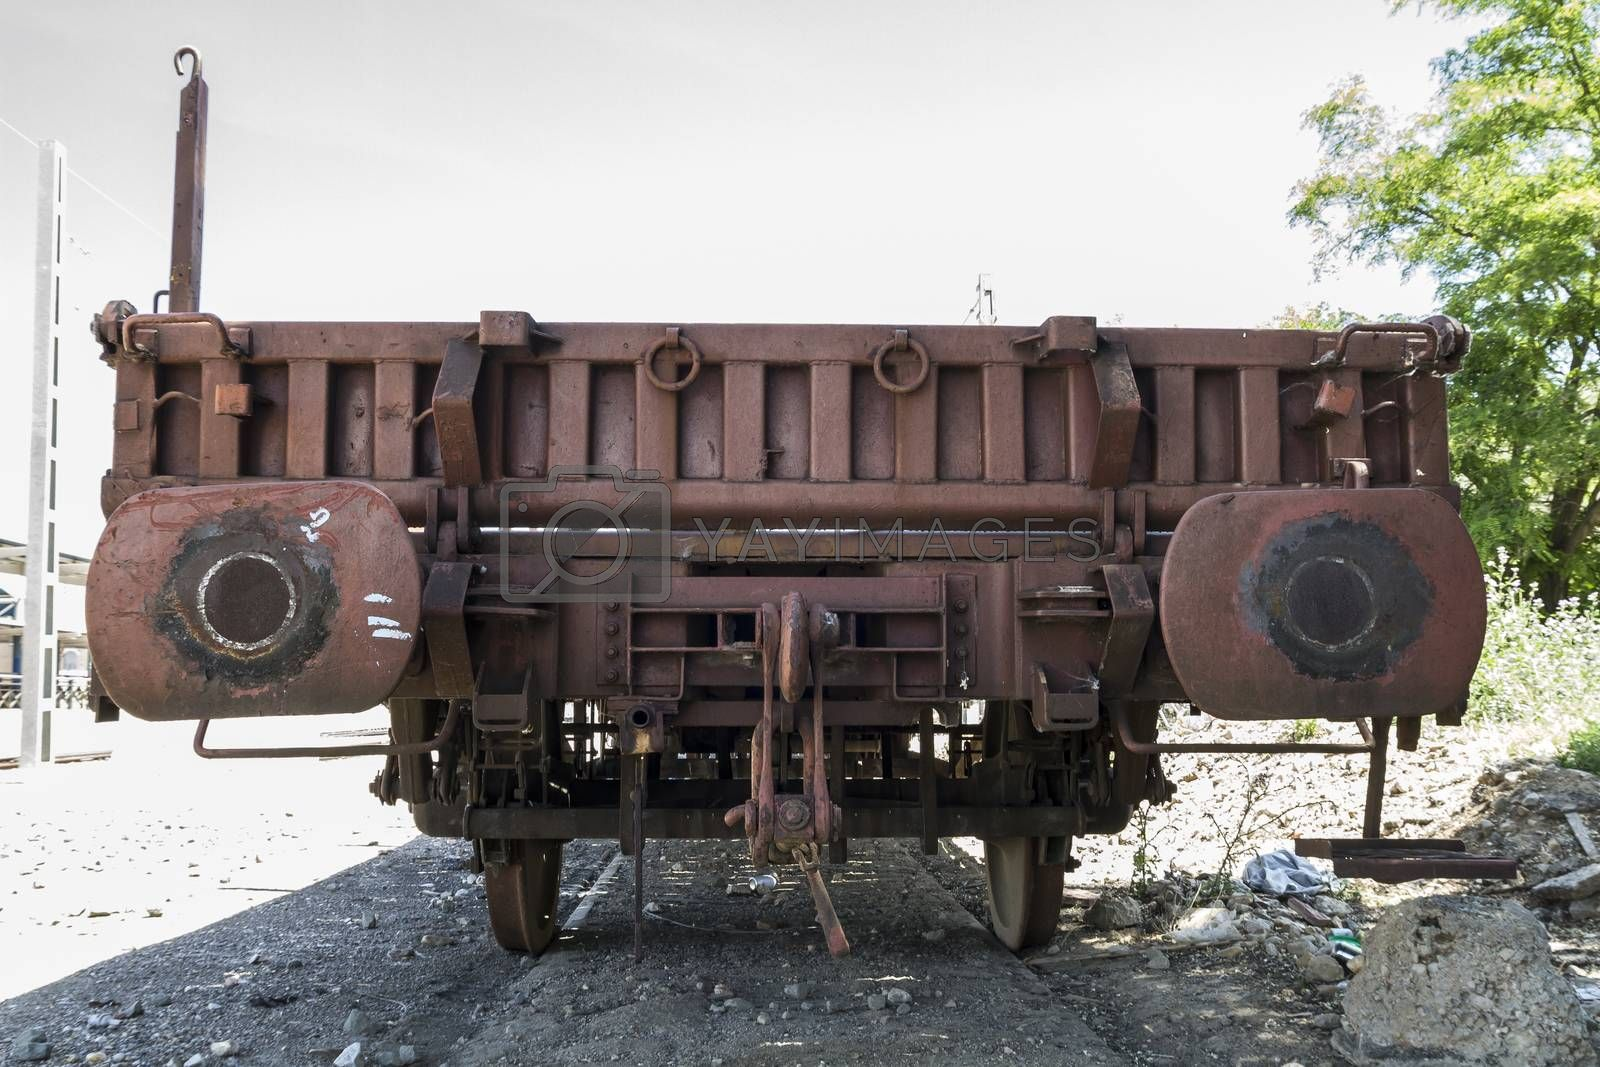 Royalty free image of railway, old freight train, metal machinery details by FernandoCortes